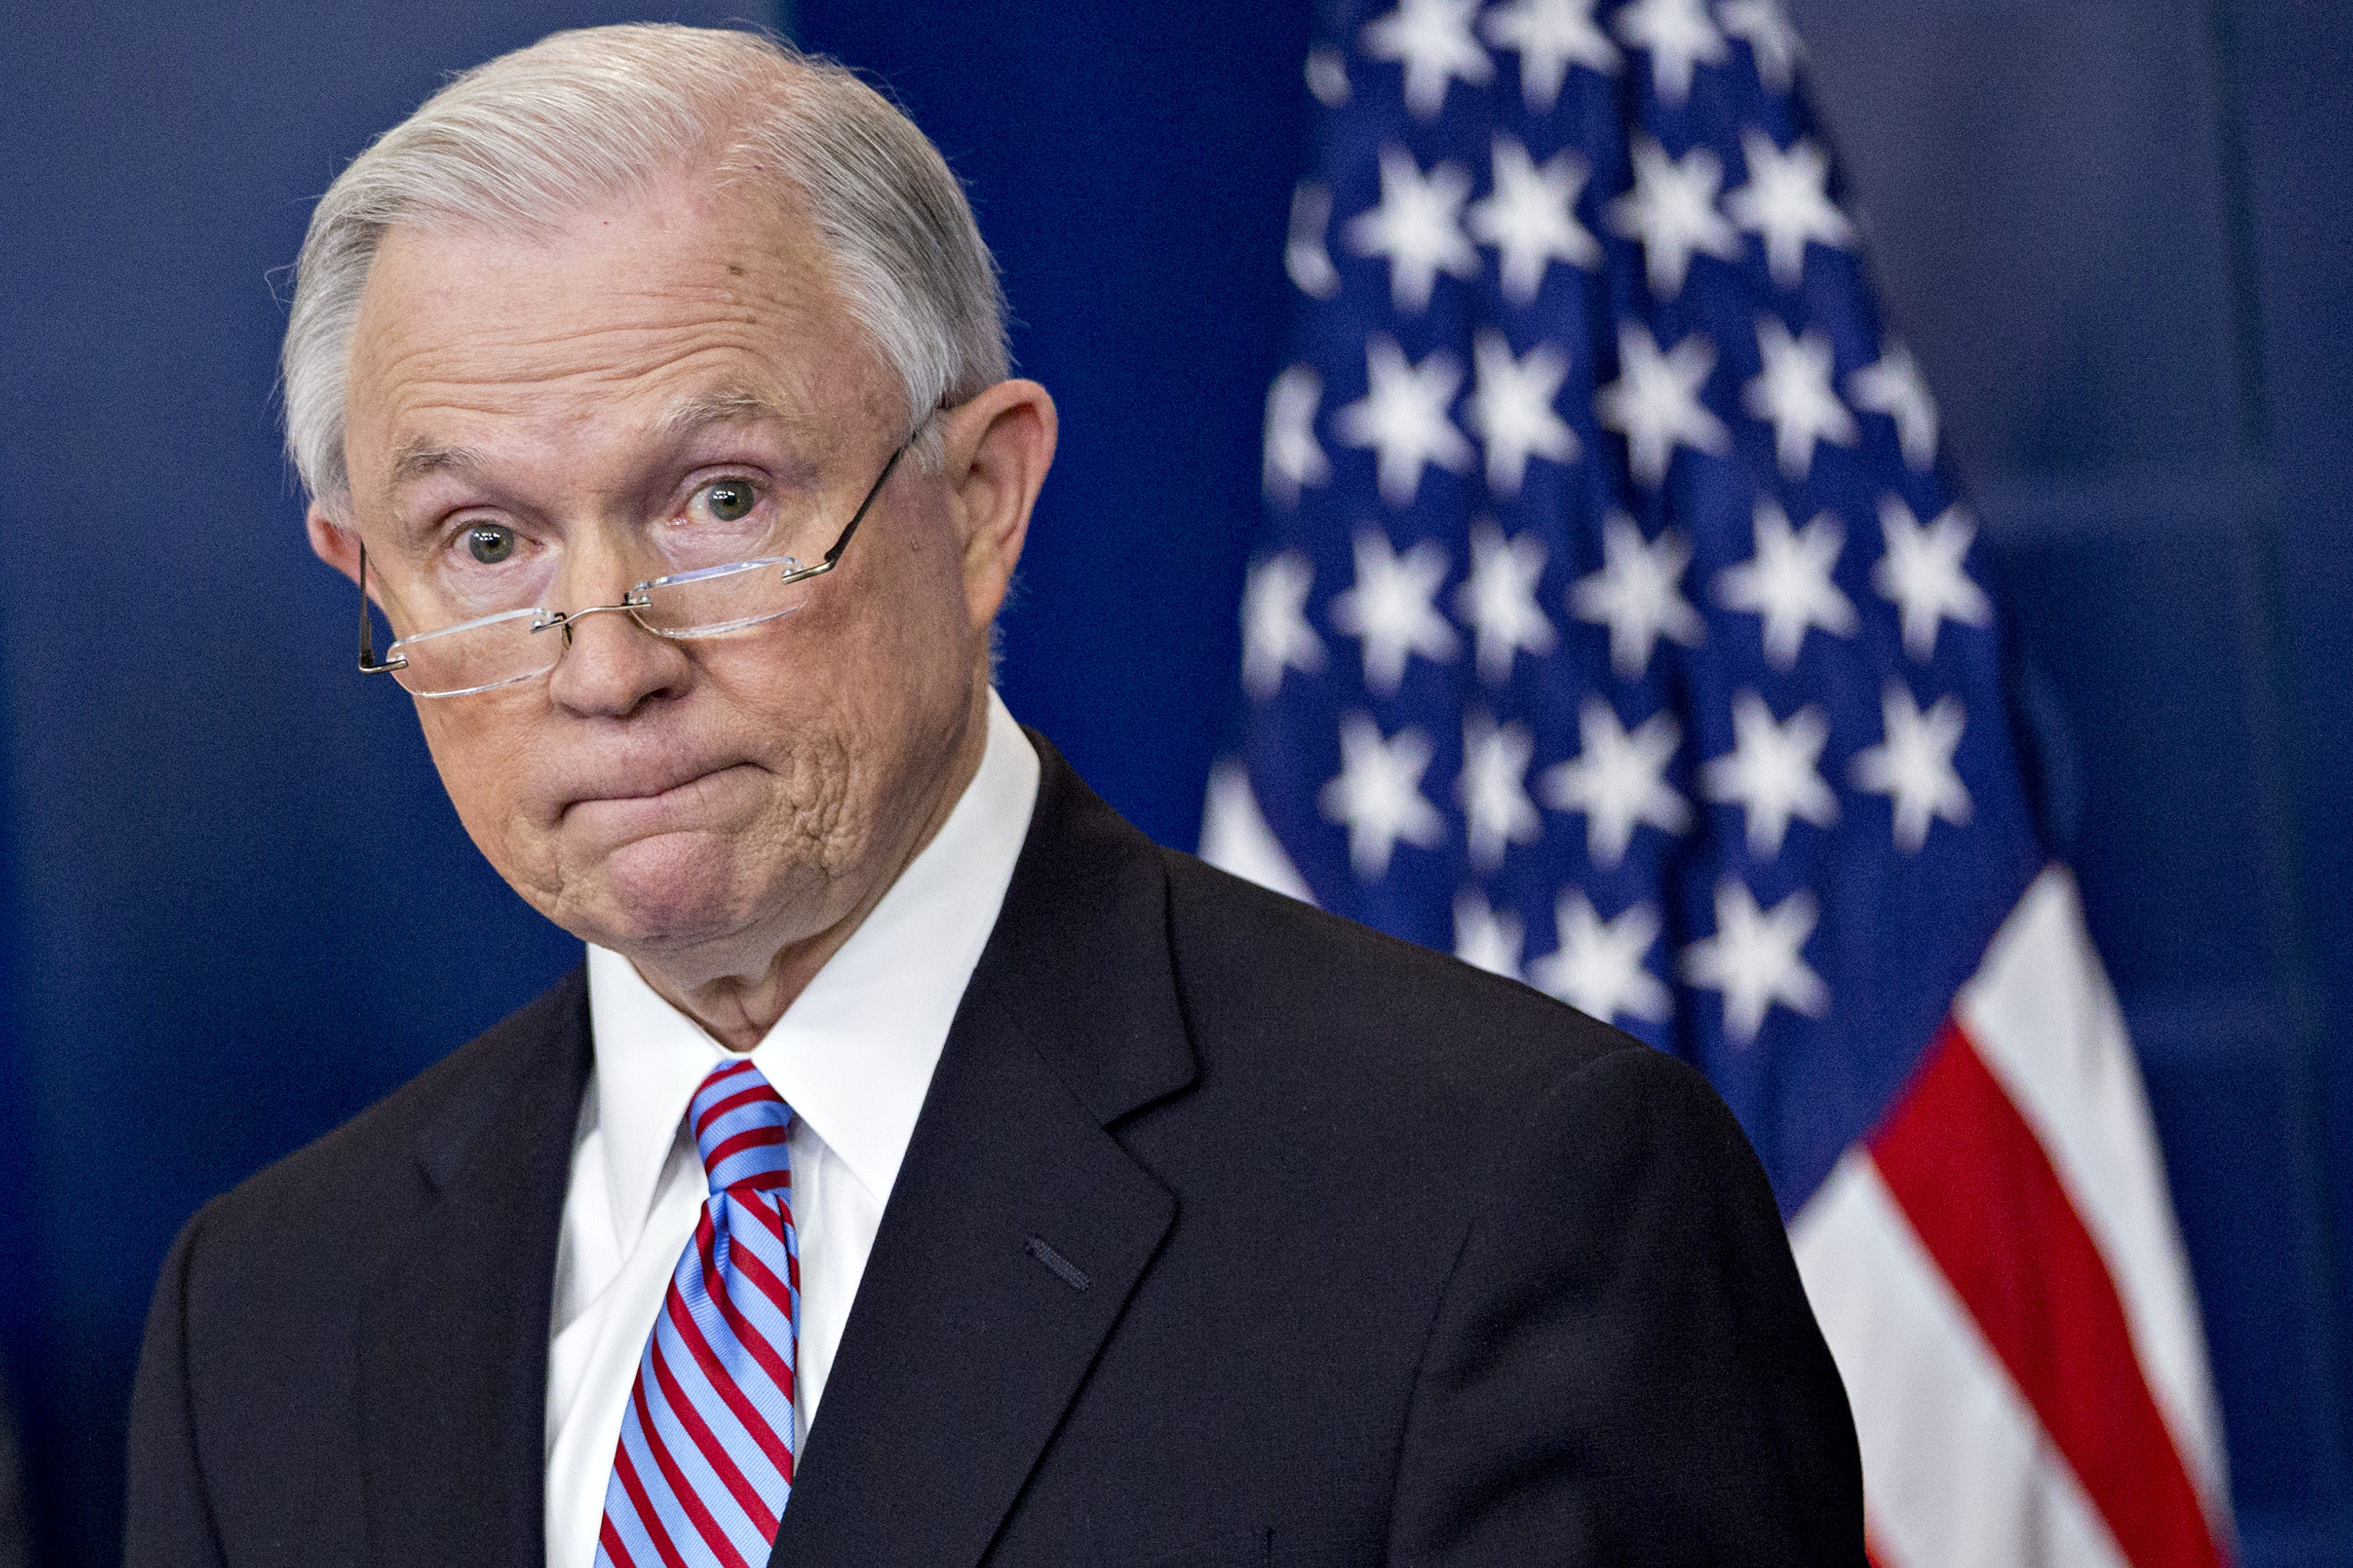 Attorney General Jeff Sessions Wants to Revive D.A.R.E. Program